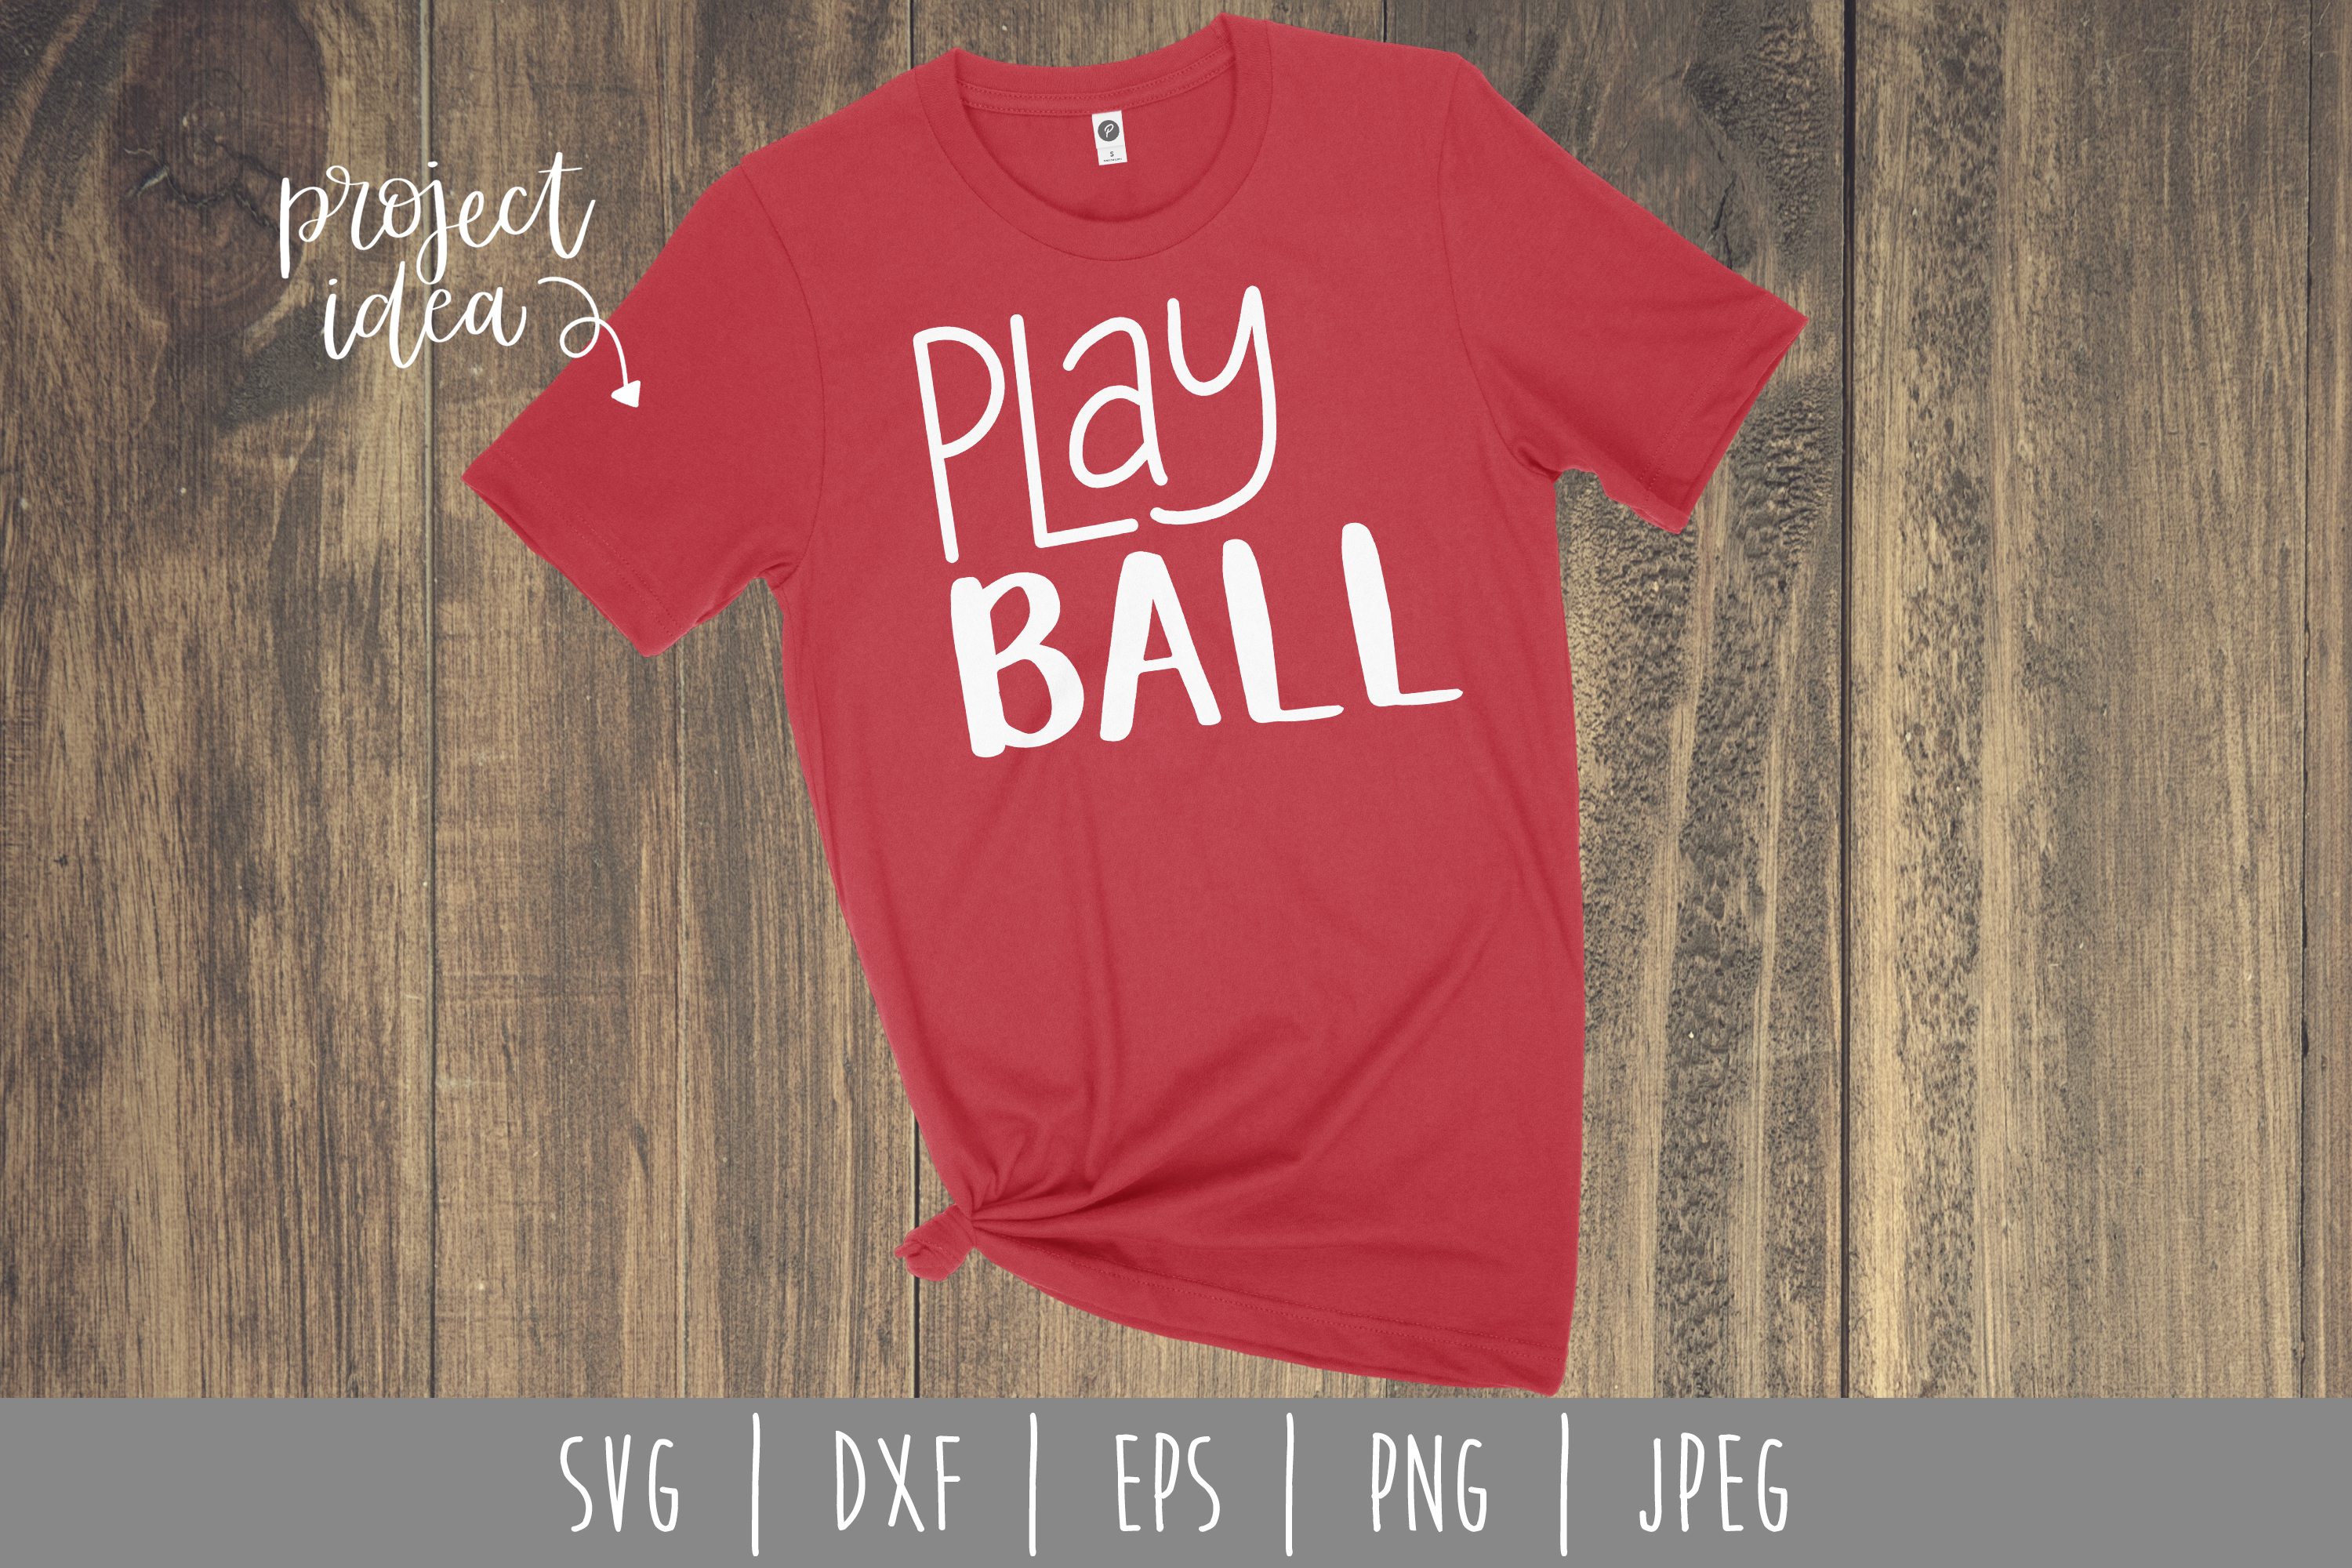 Play Ball SVG, DXF, EPS, PNG, JPEG example image 2